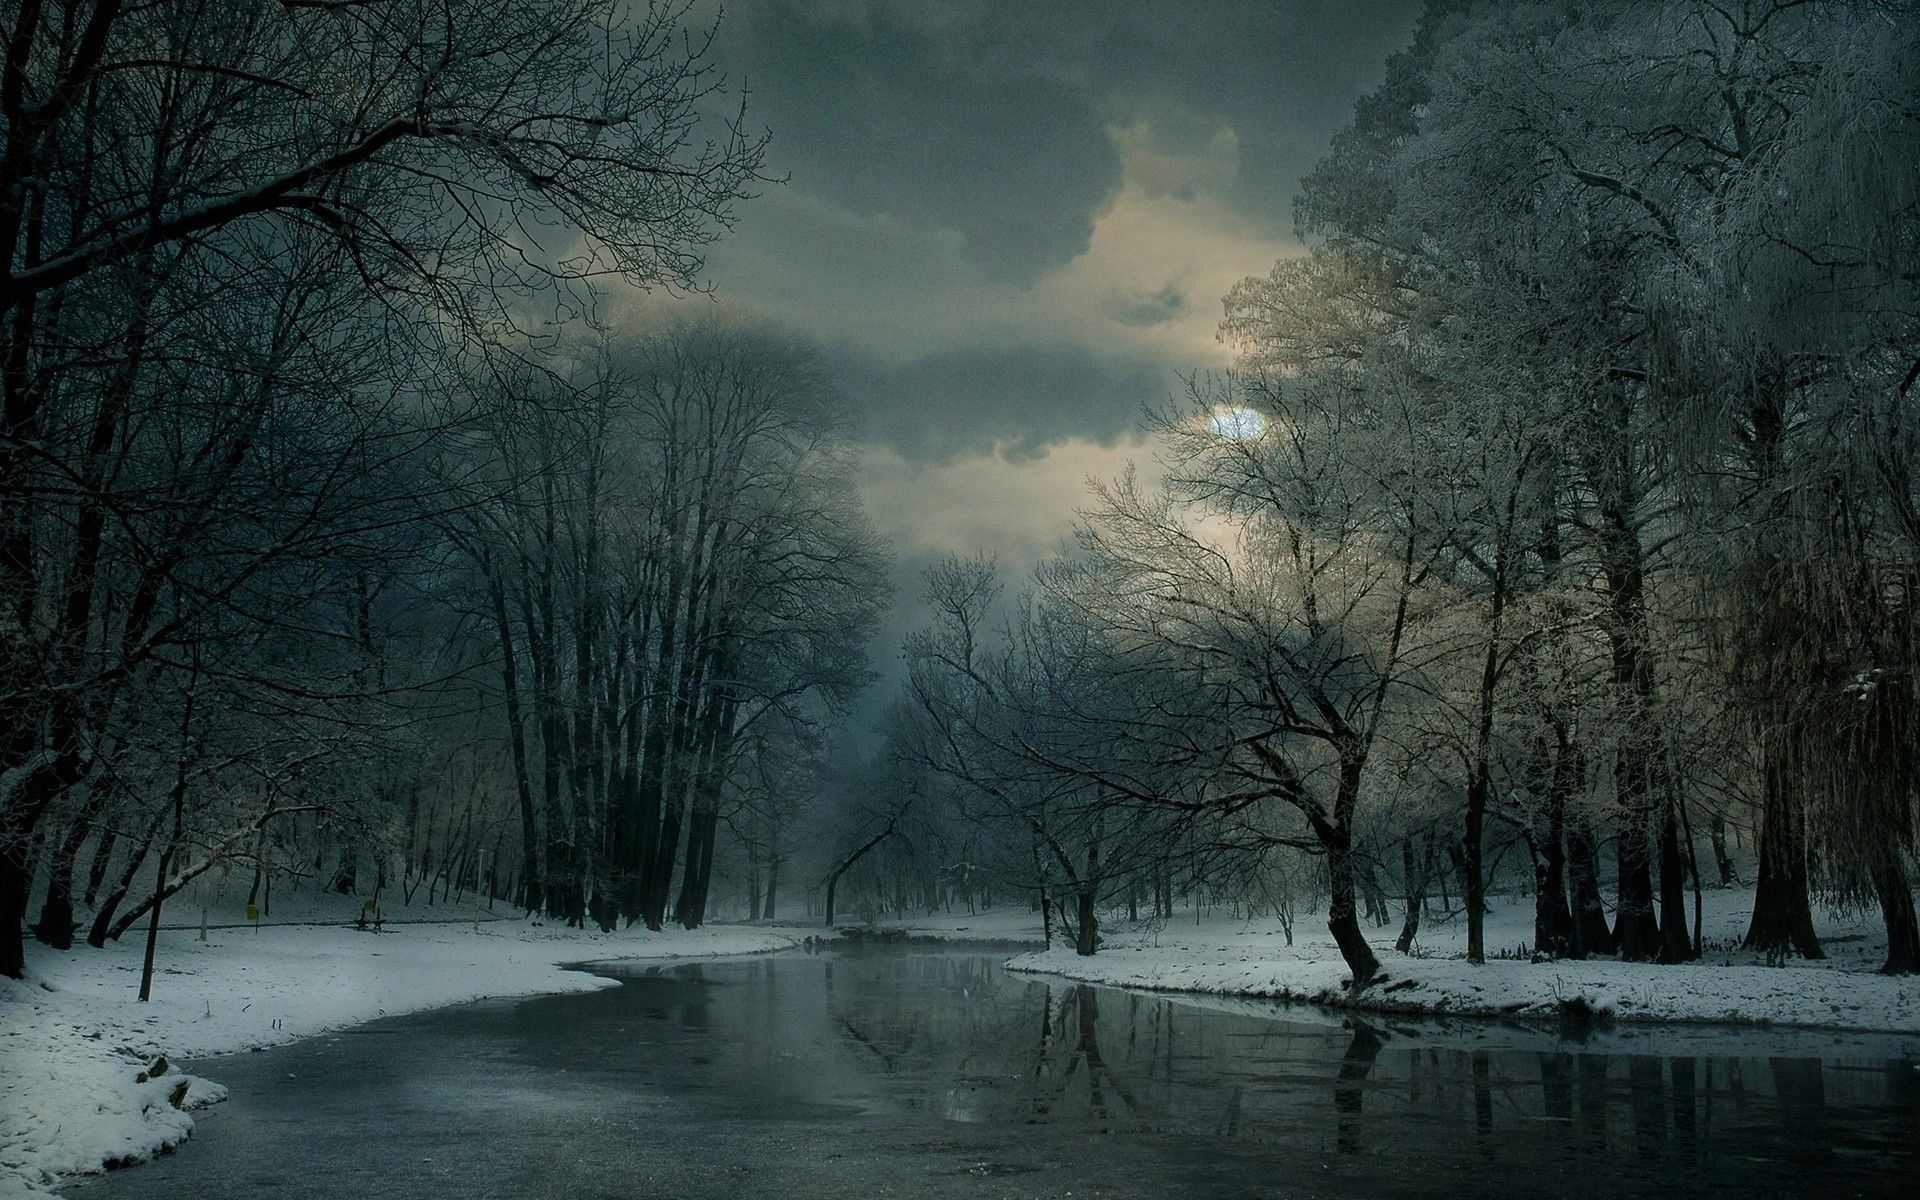 Landscape Nature Winter River Clouds Snow Forest Frost Trees Cold Mist Wallpaper And Background Landscape Photography Nature Winter Landscape Landscape